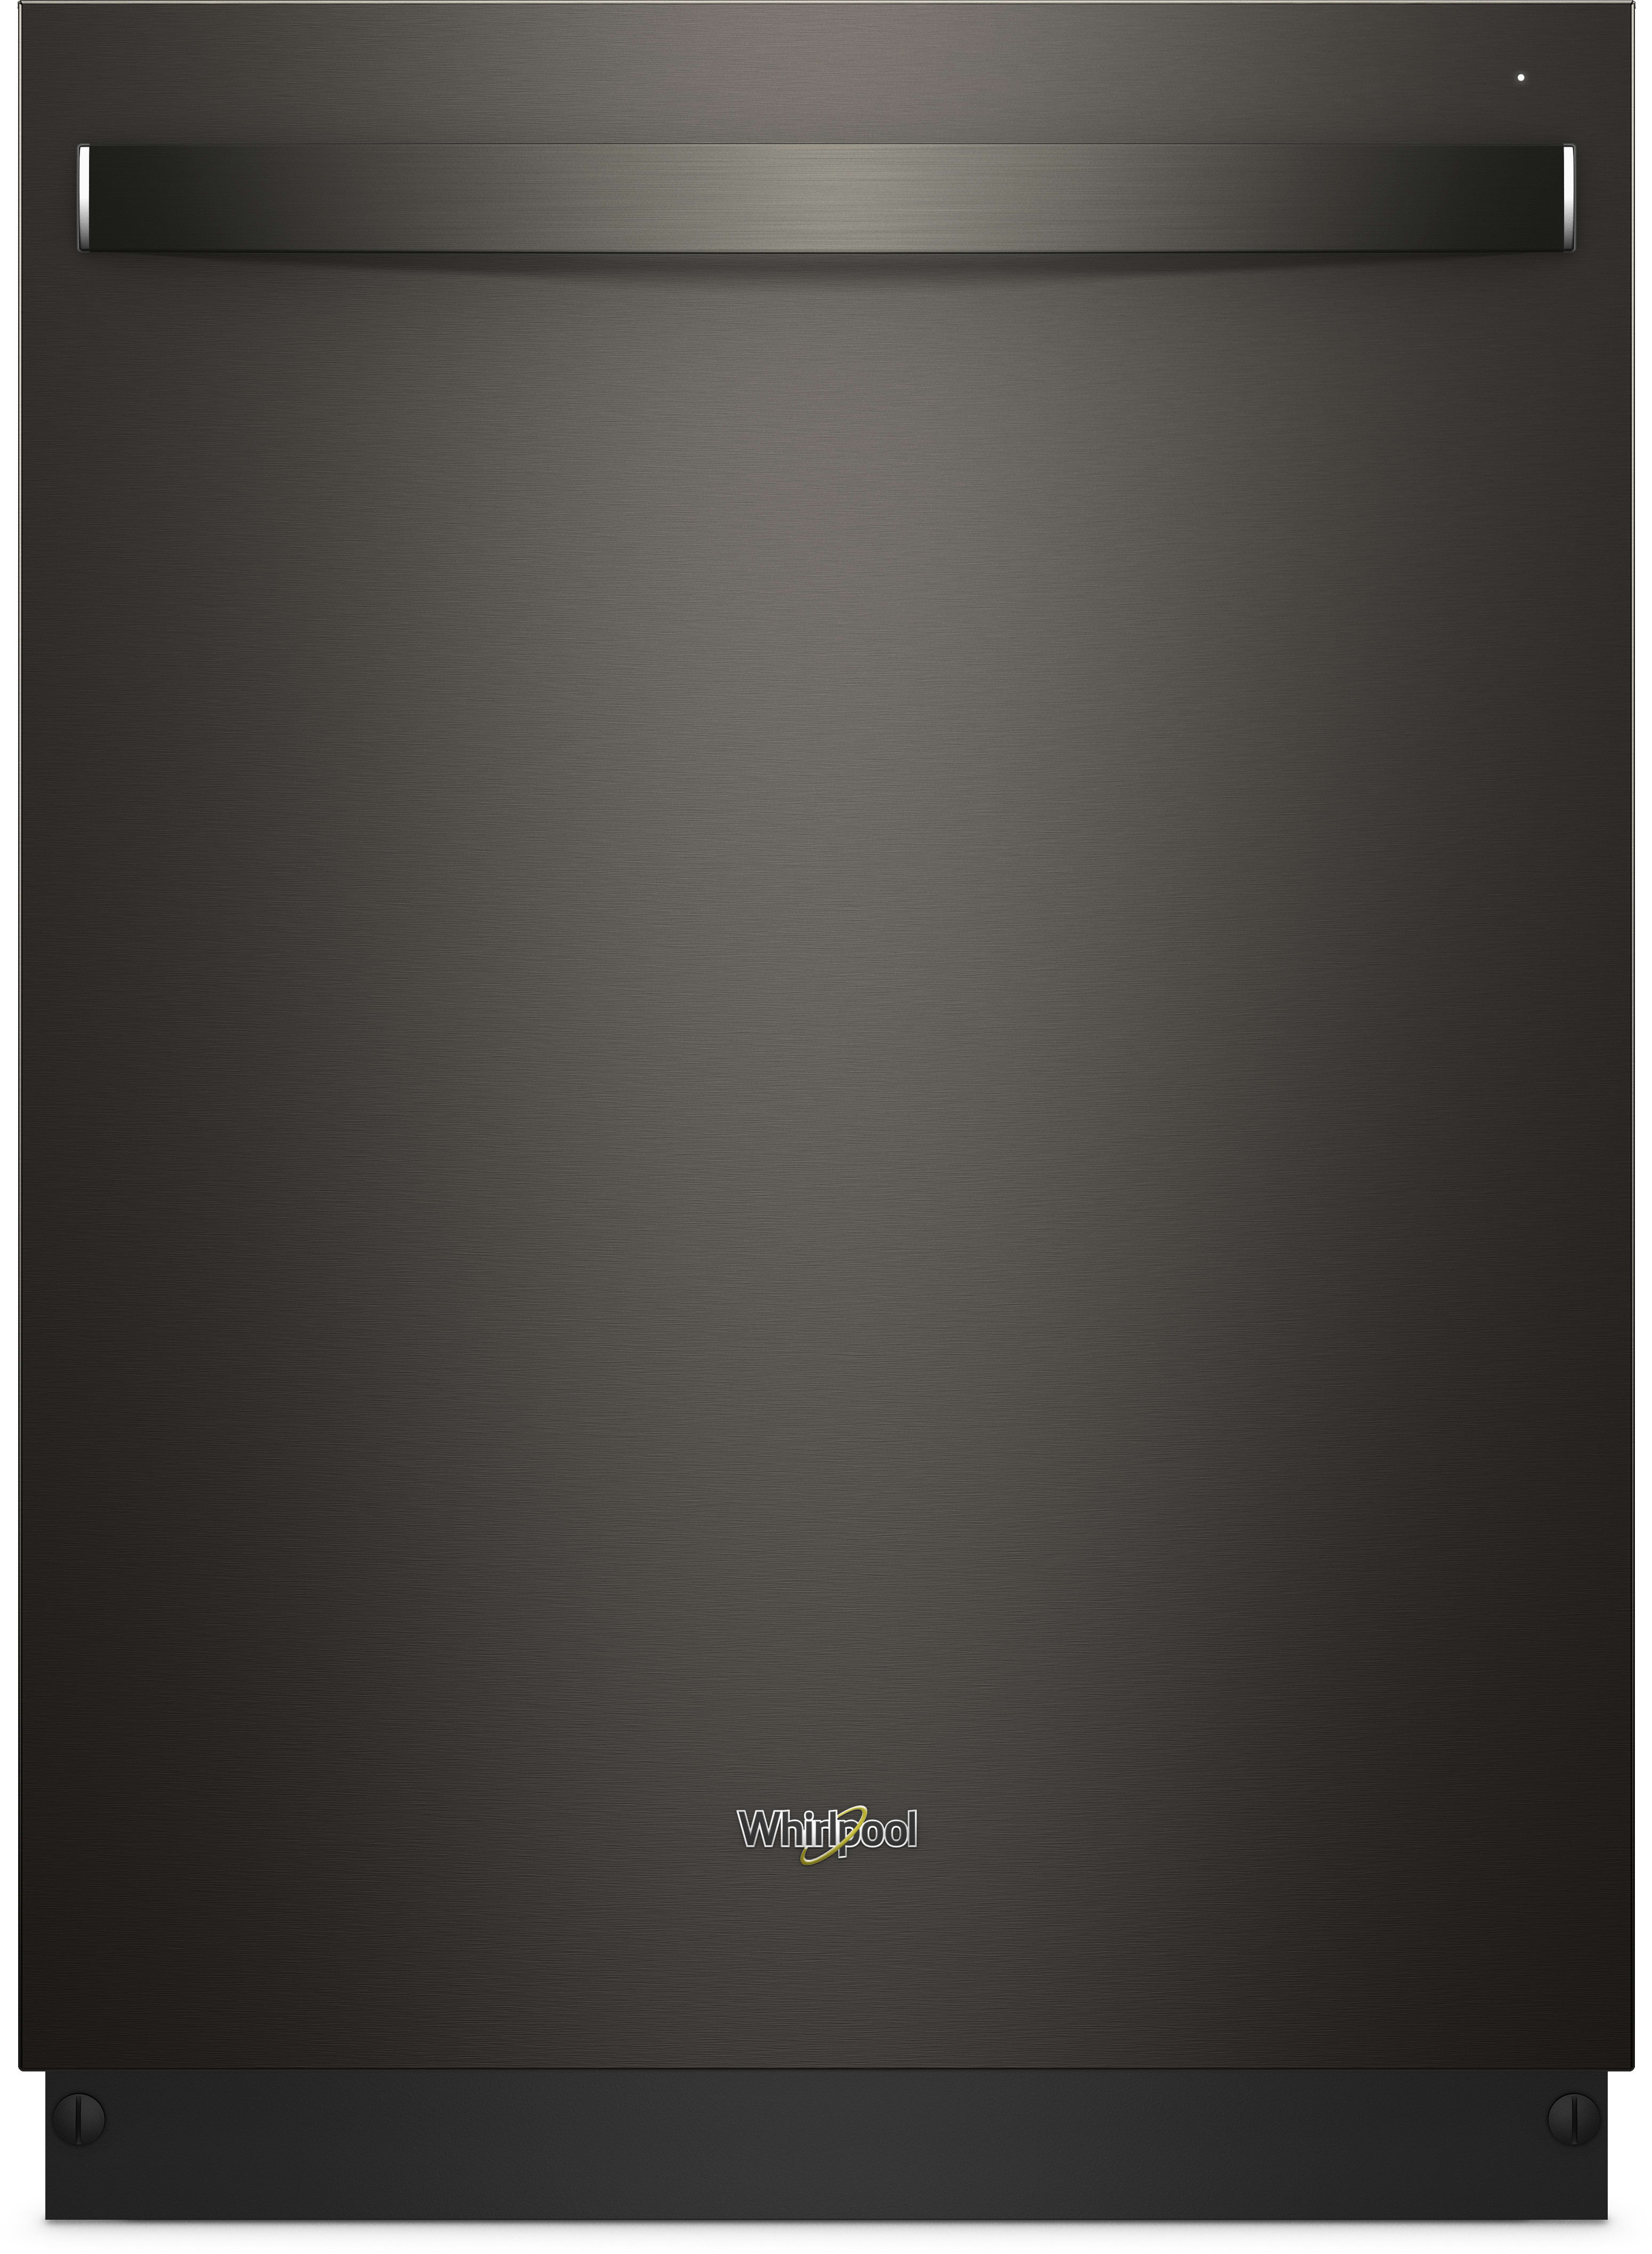 Whirlpool Wdt750sahv Fully Integrated Dishwasher With